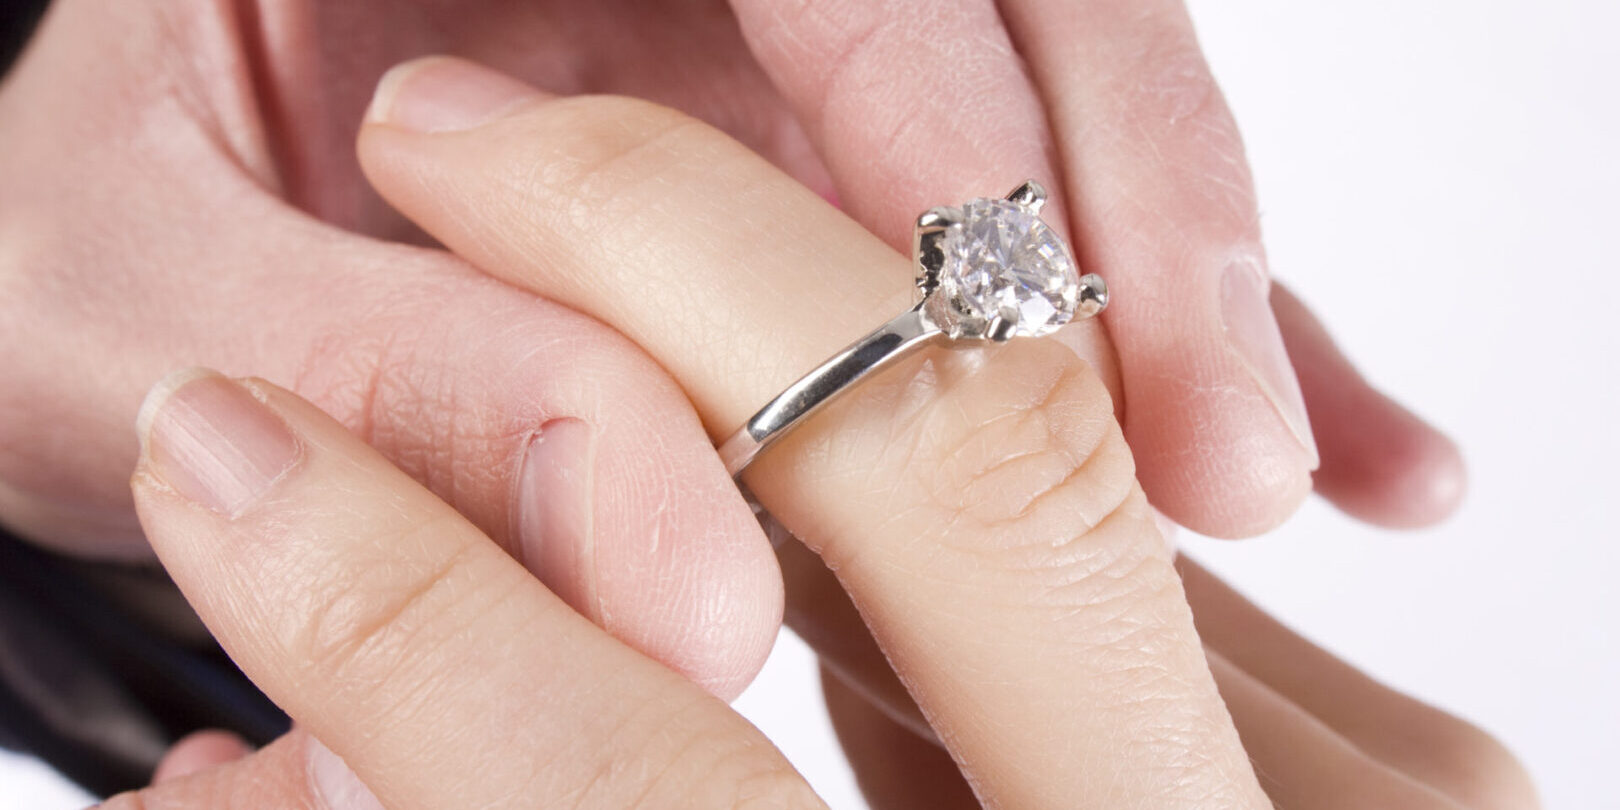 A man slides a diamond ring on his fiance's finger